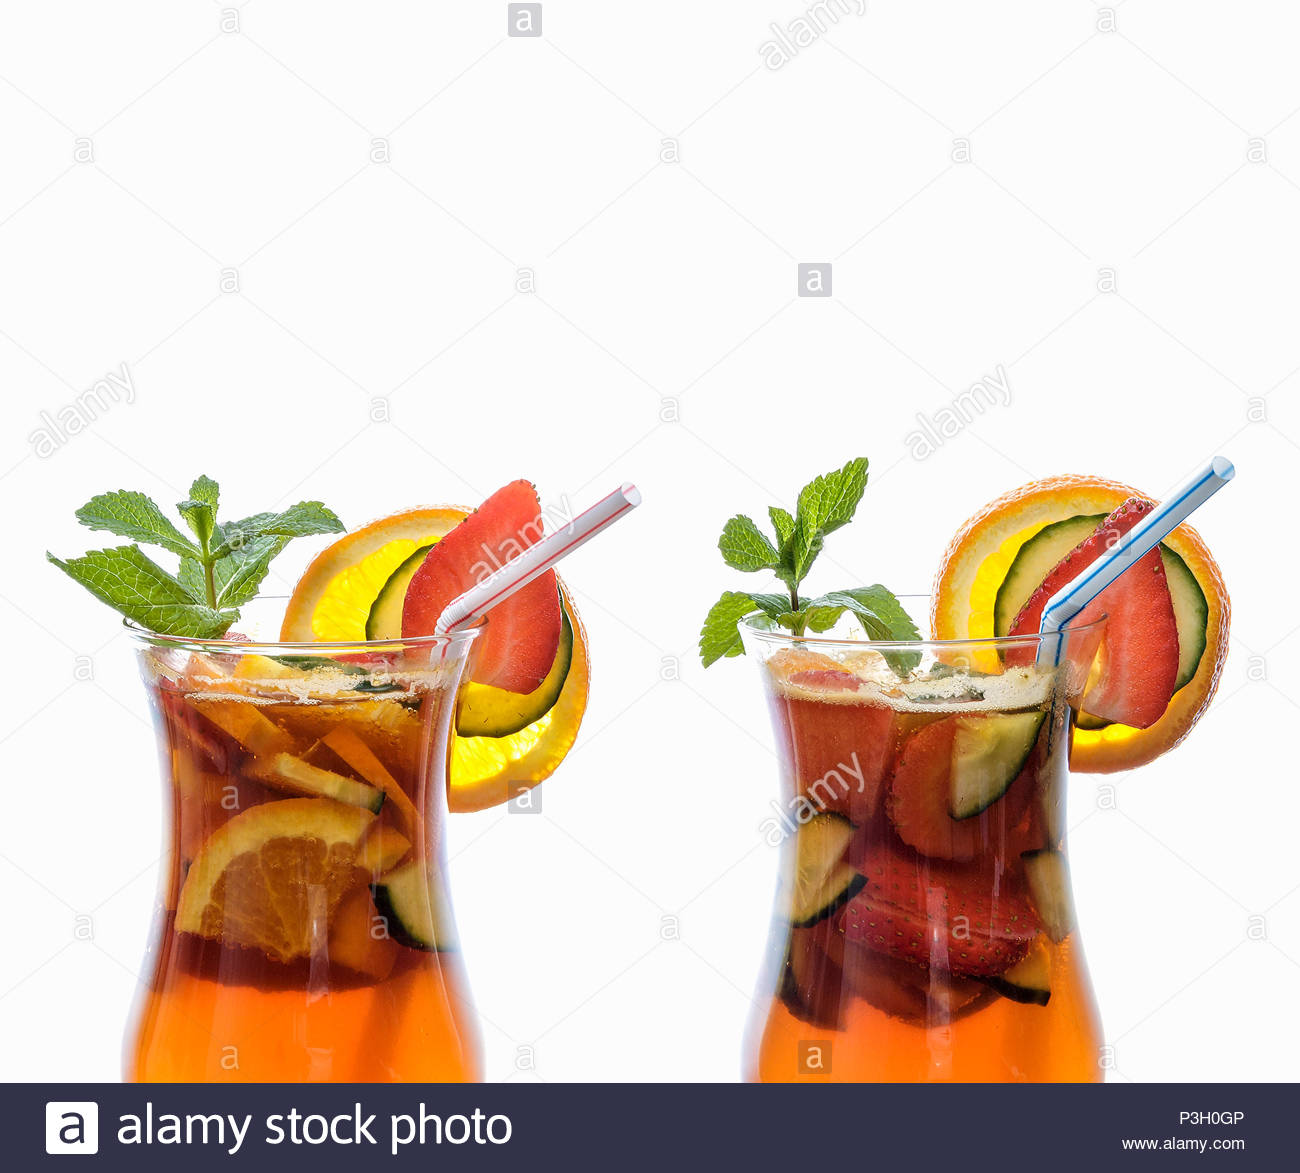 Infused Gin Stockfotos & Infused Gin Bilder - Alamy